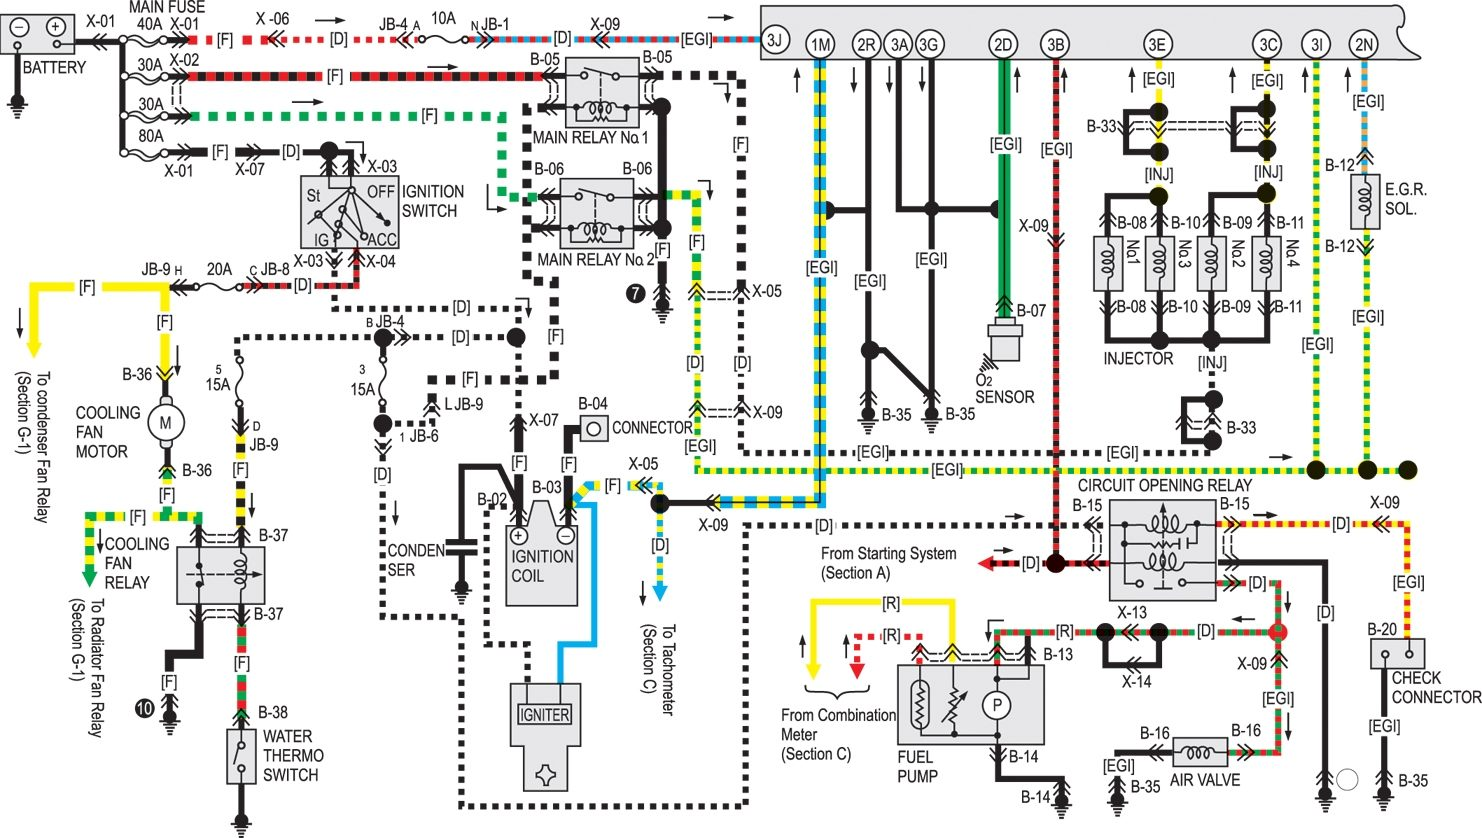 2008 Mazda 3 Parts Diagram Opinions About Wiring Engine Diagrams 323f Pdf Wire Center U2022 Rh 207 246 123 107 List Manual